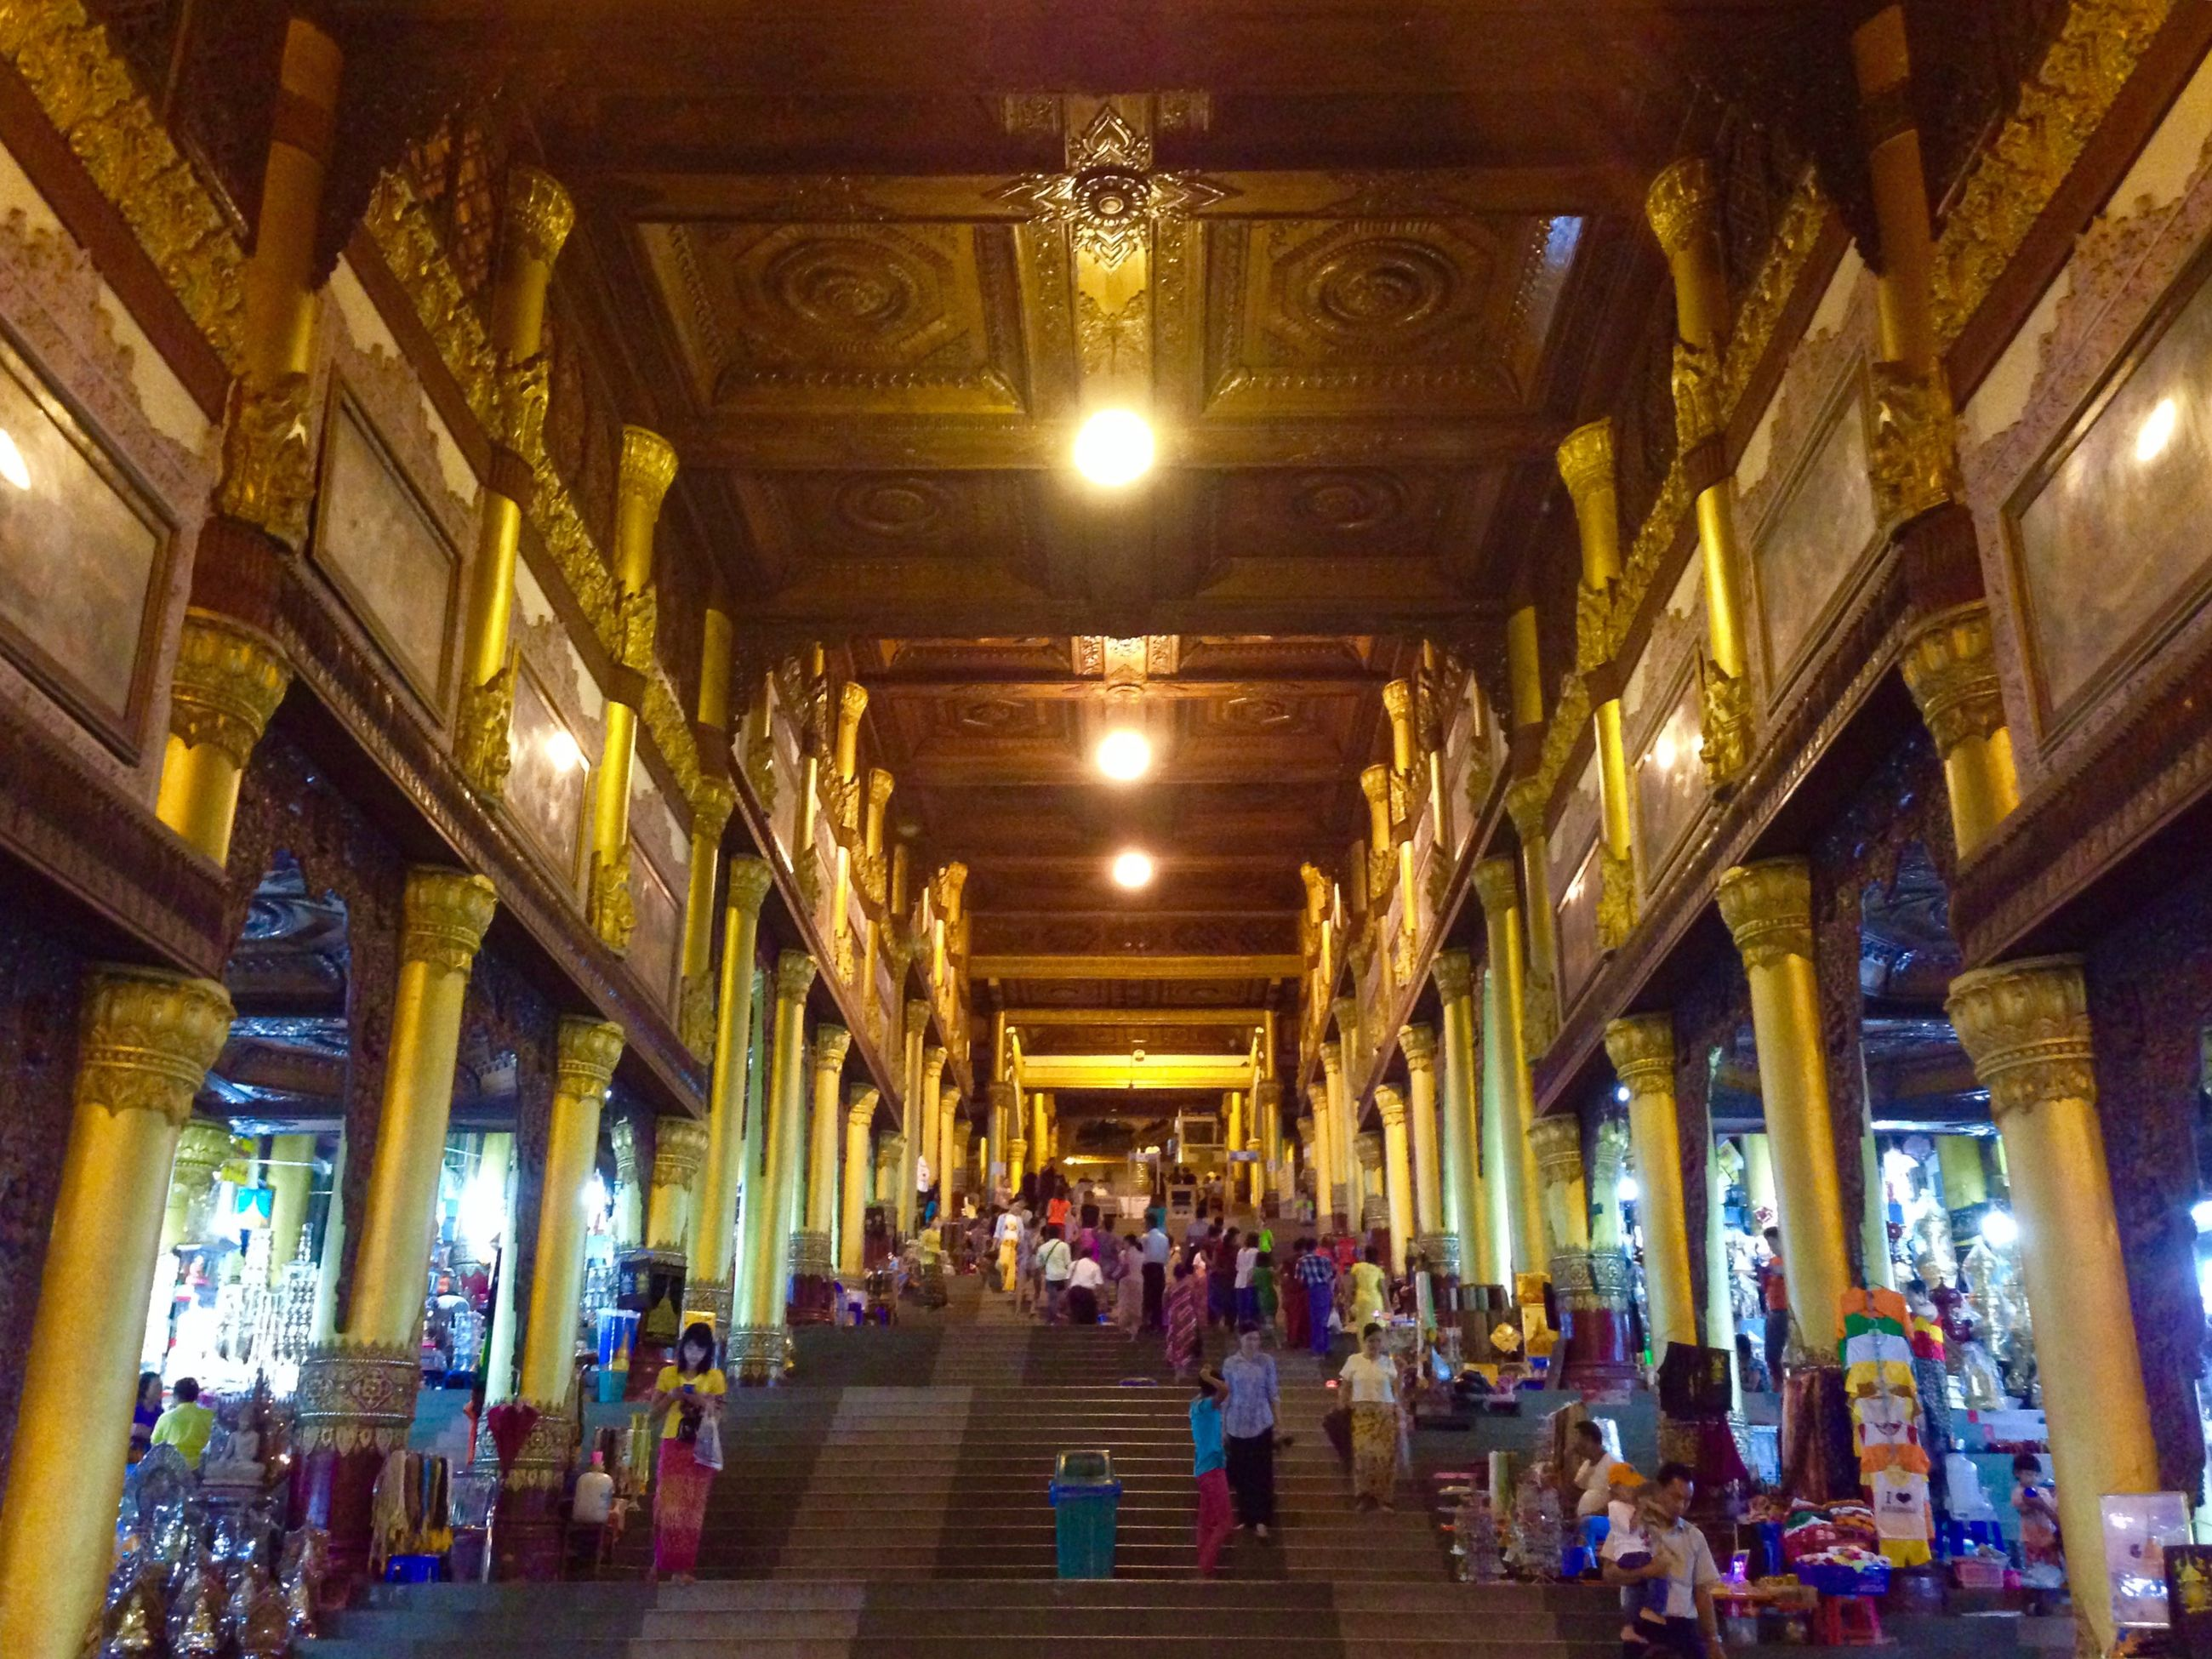 large group of people, indoors, person, illuminated, ceiling, architecture, men, built structure, lifestyles, lighting equipment, leisure activity, architectural column, the way forward, walking, mixed age range, group of people, shopping, travel, in a row